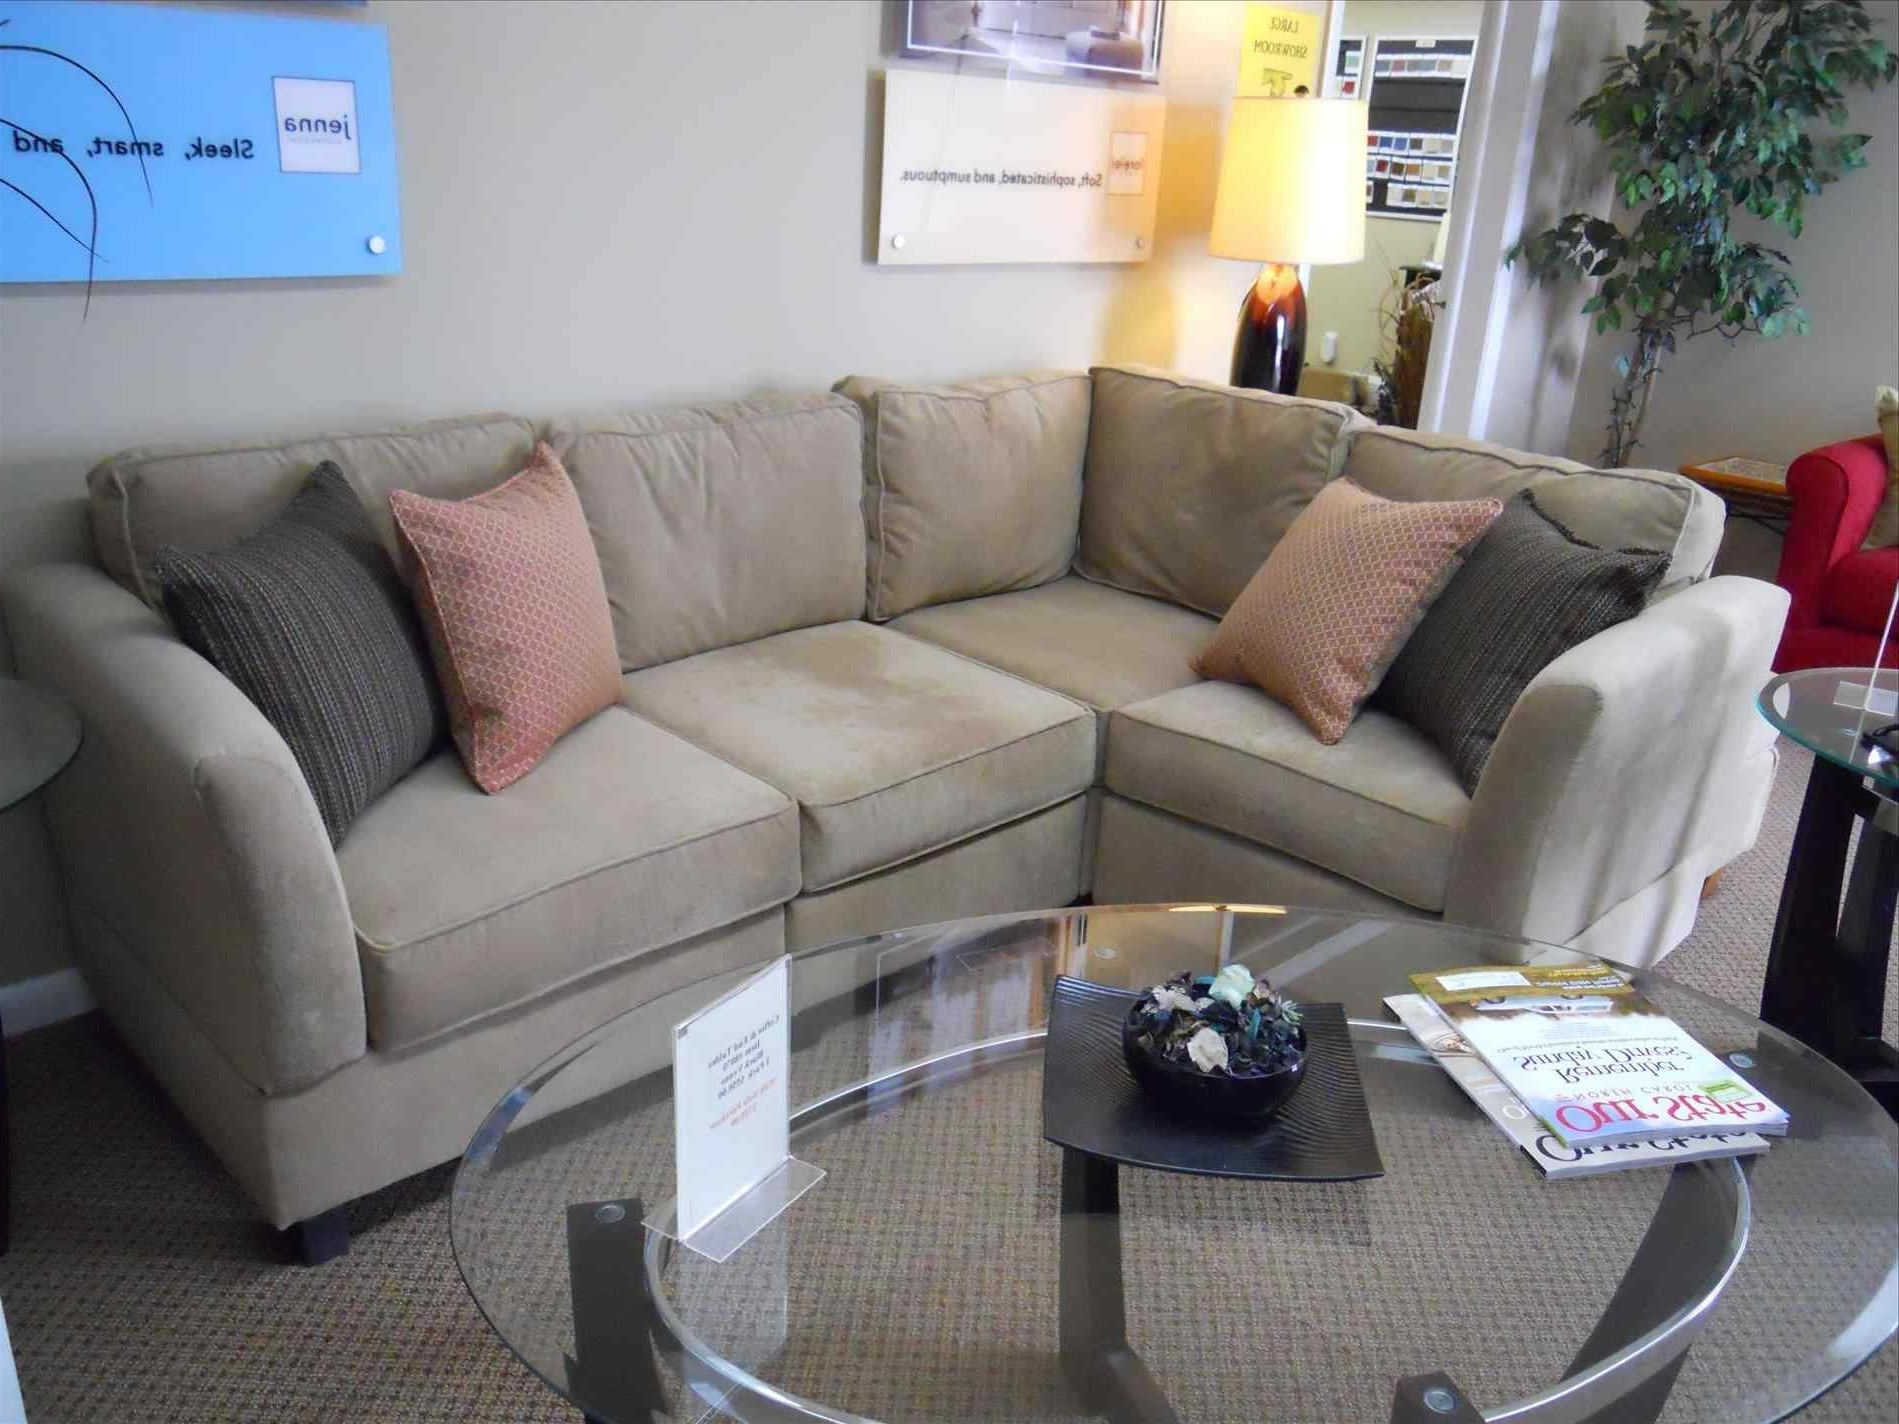 Preferred Modern Sectional Sofas For Small Spaces With Regard To For Cozy Living Room Lazy Boy Chair Home Designs Lazy Sectional (View 14 of 15)